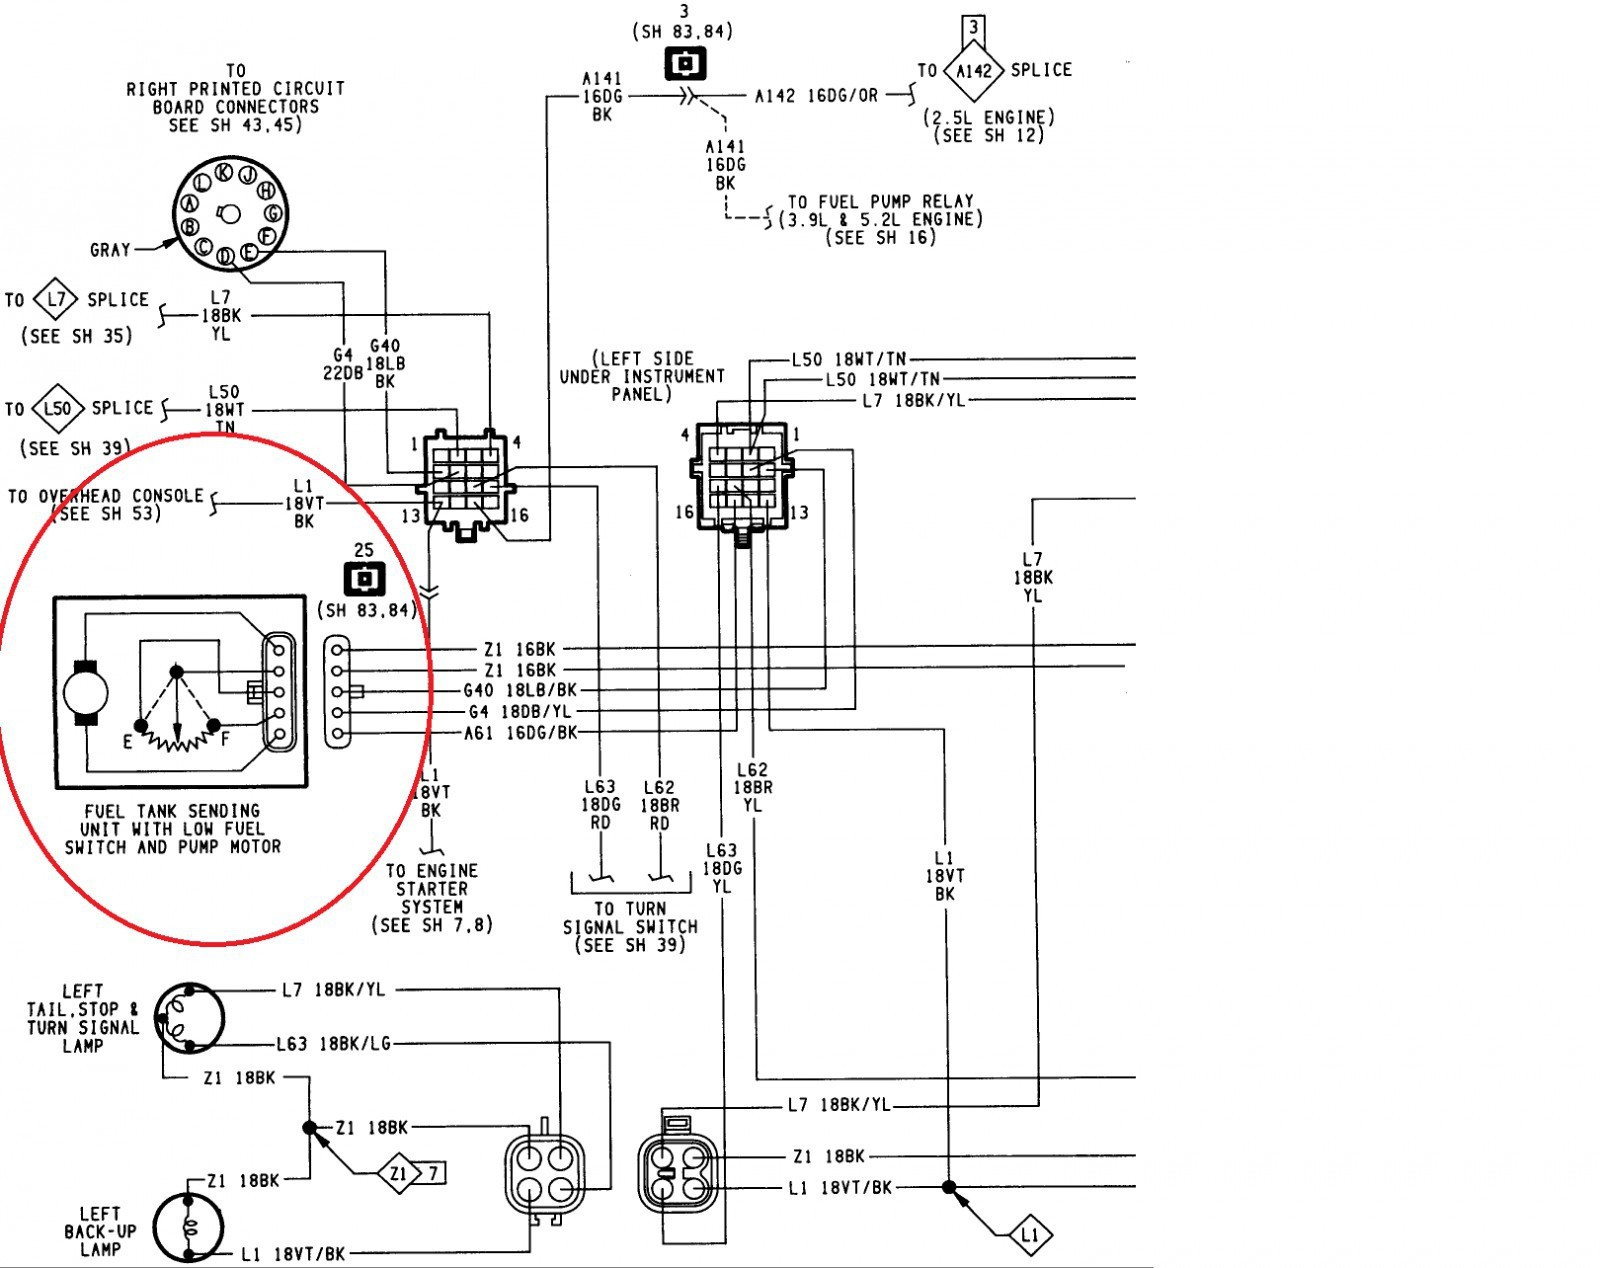 boat fuel gauge wiring diagram new wiring diagrams for vdo gauges valid marine fuel gauge wiring of boat fuel gauge wiring diagram vw fuel gauge wiring basic wiring diagram \u2022